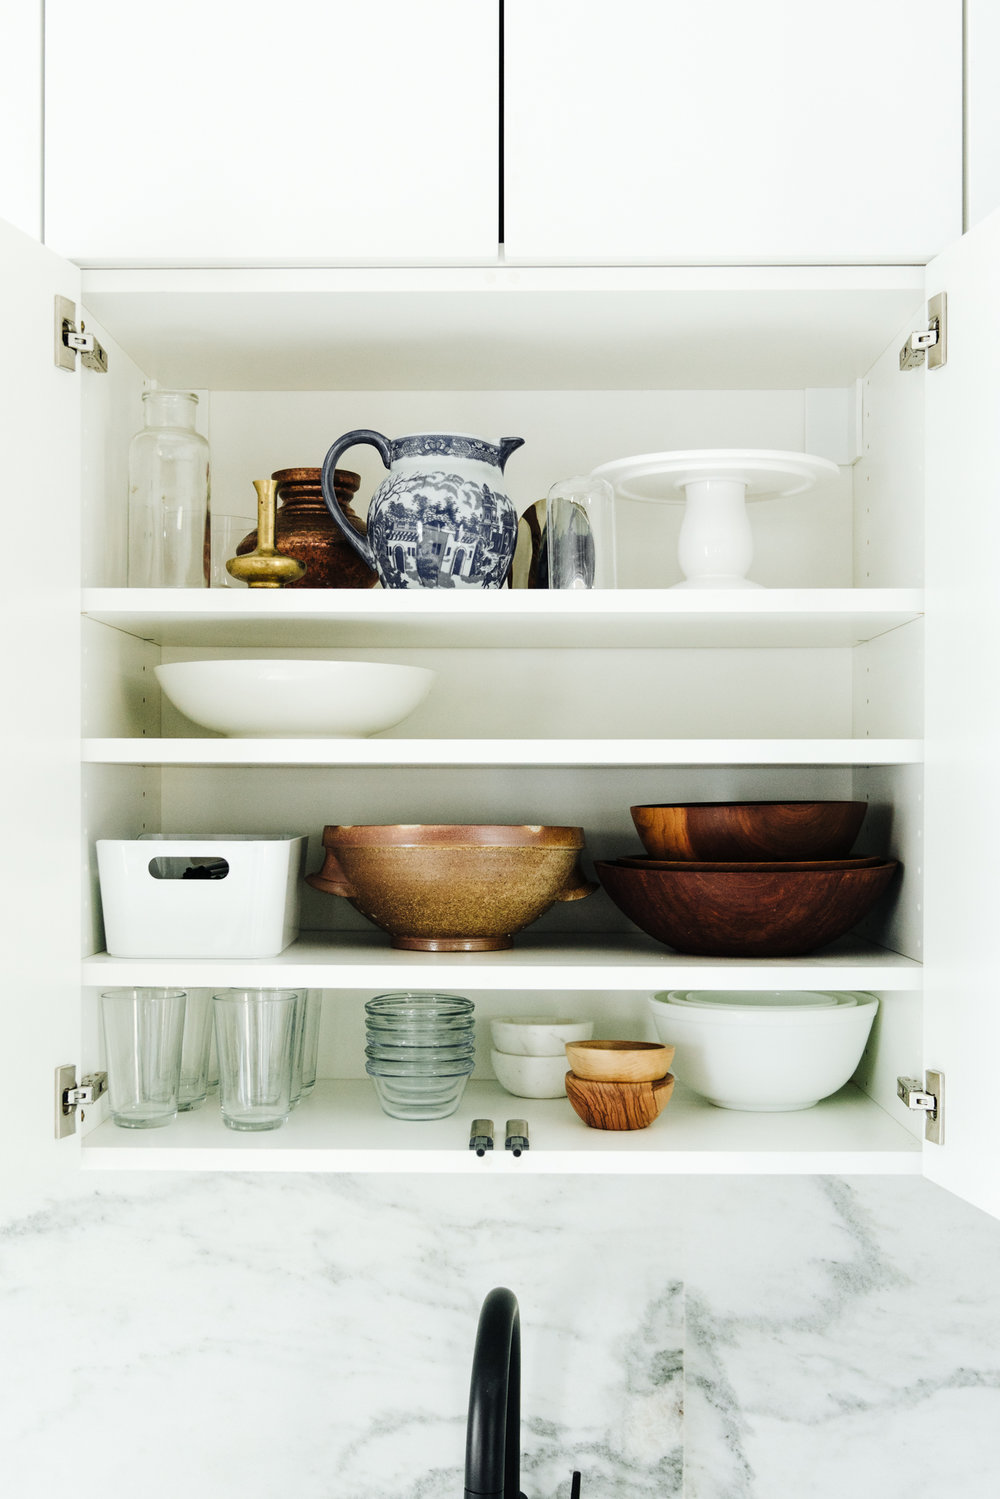 How to Organize Your Efficient Kitchen — Healthfully Ever After